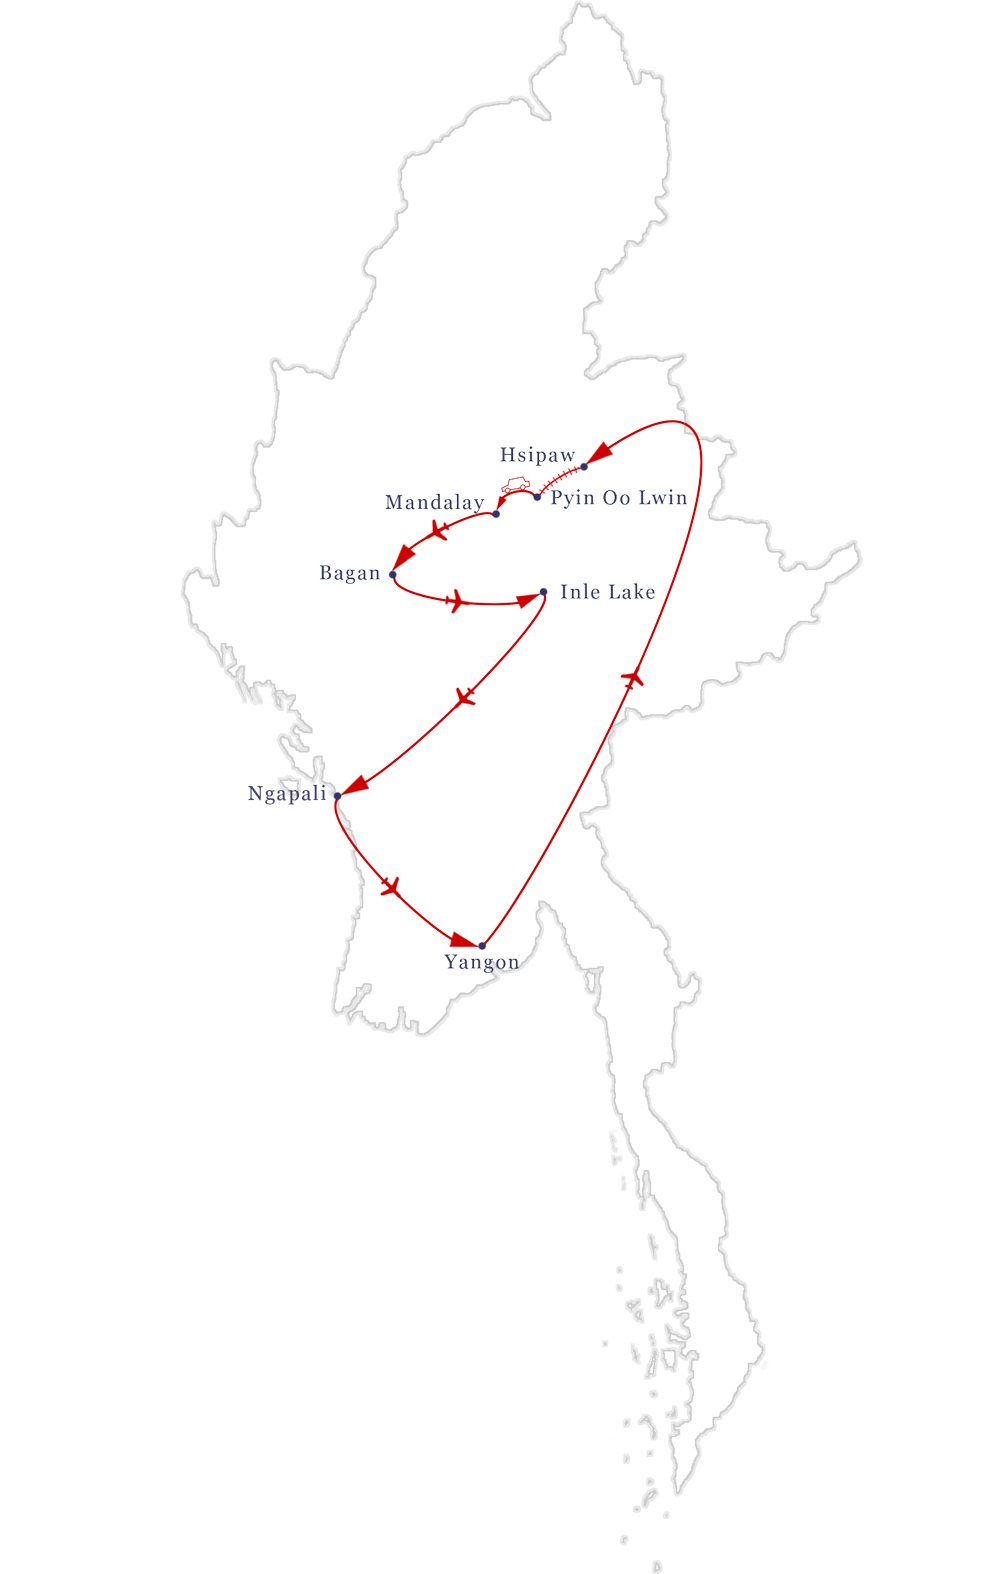 a-classic-myanmar-trail-map